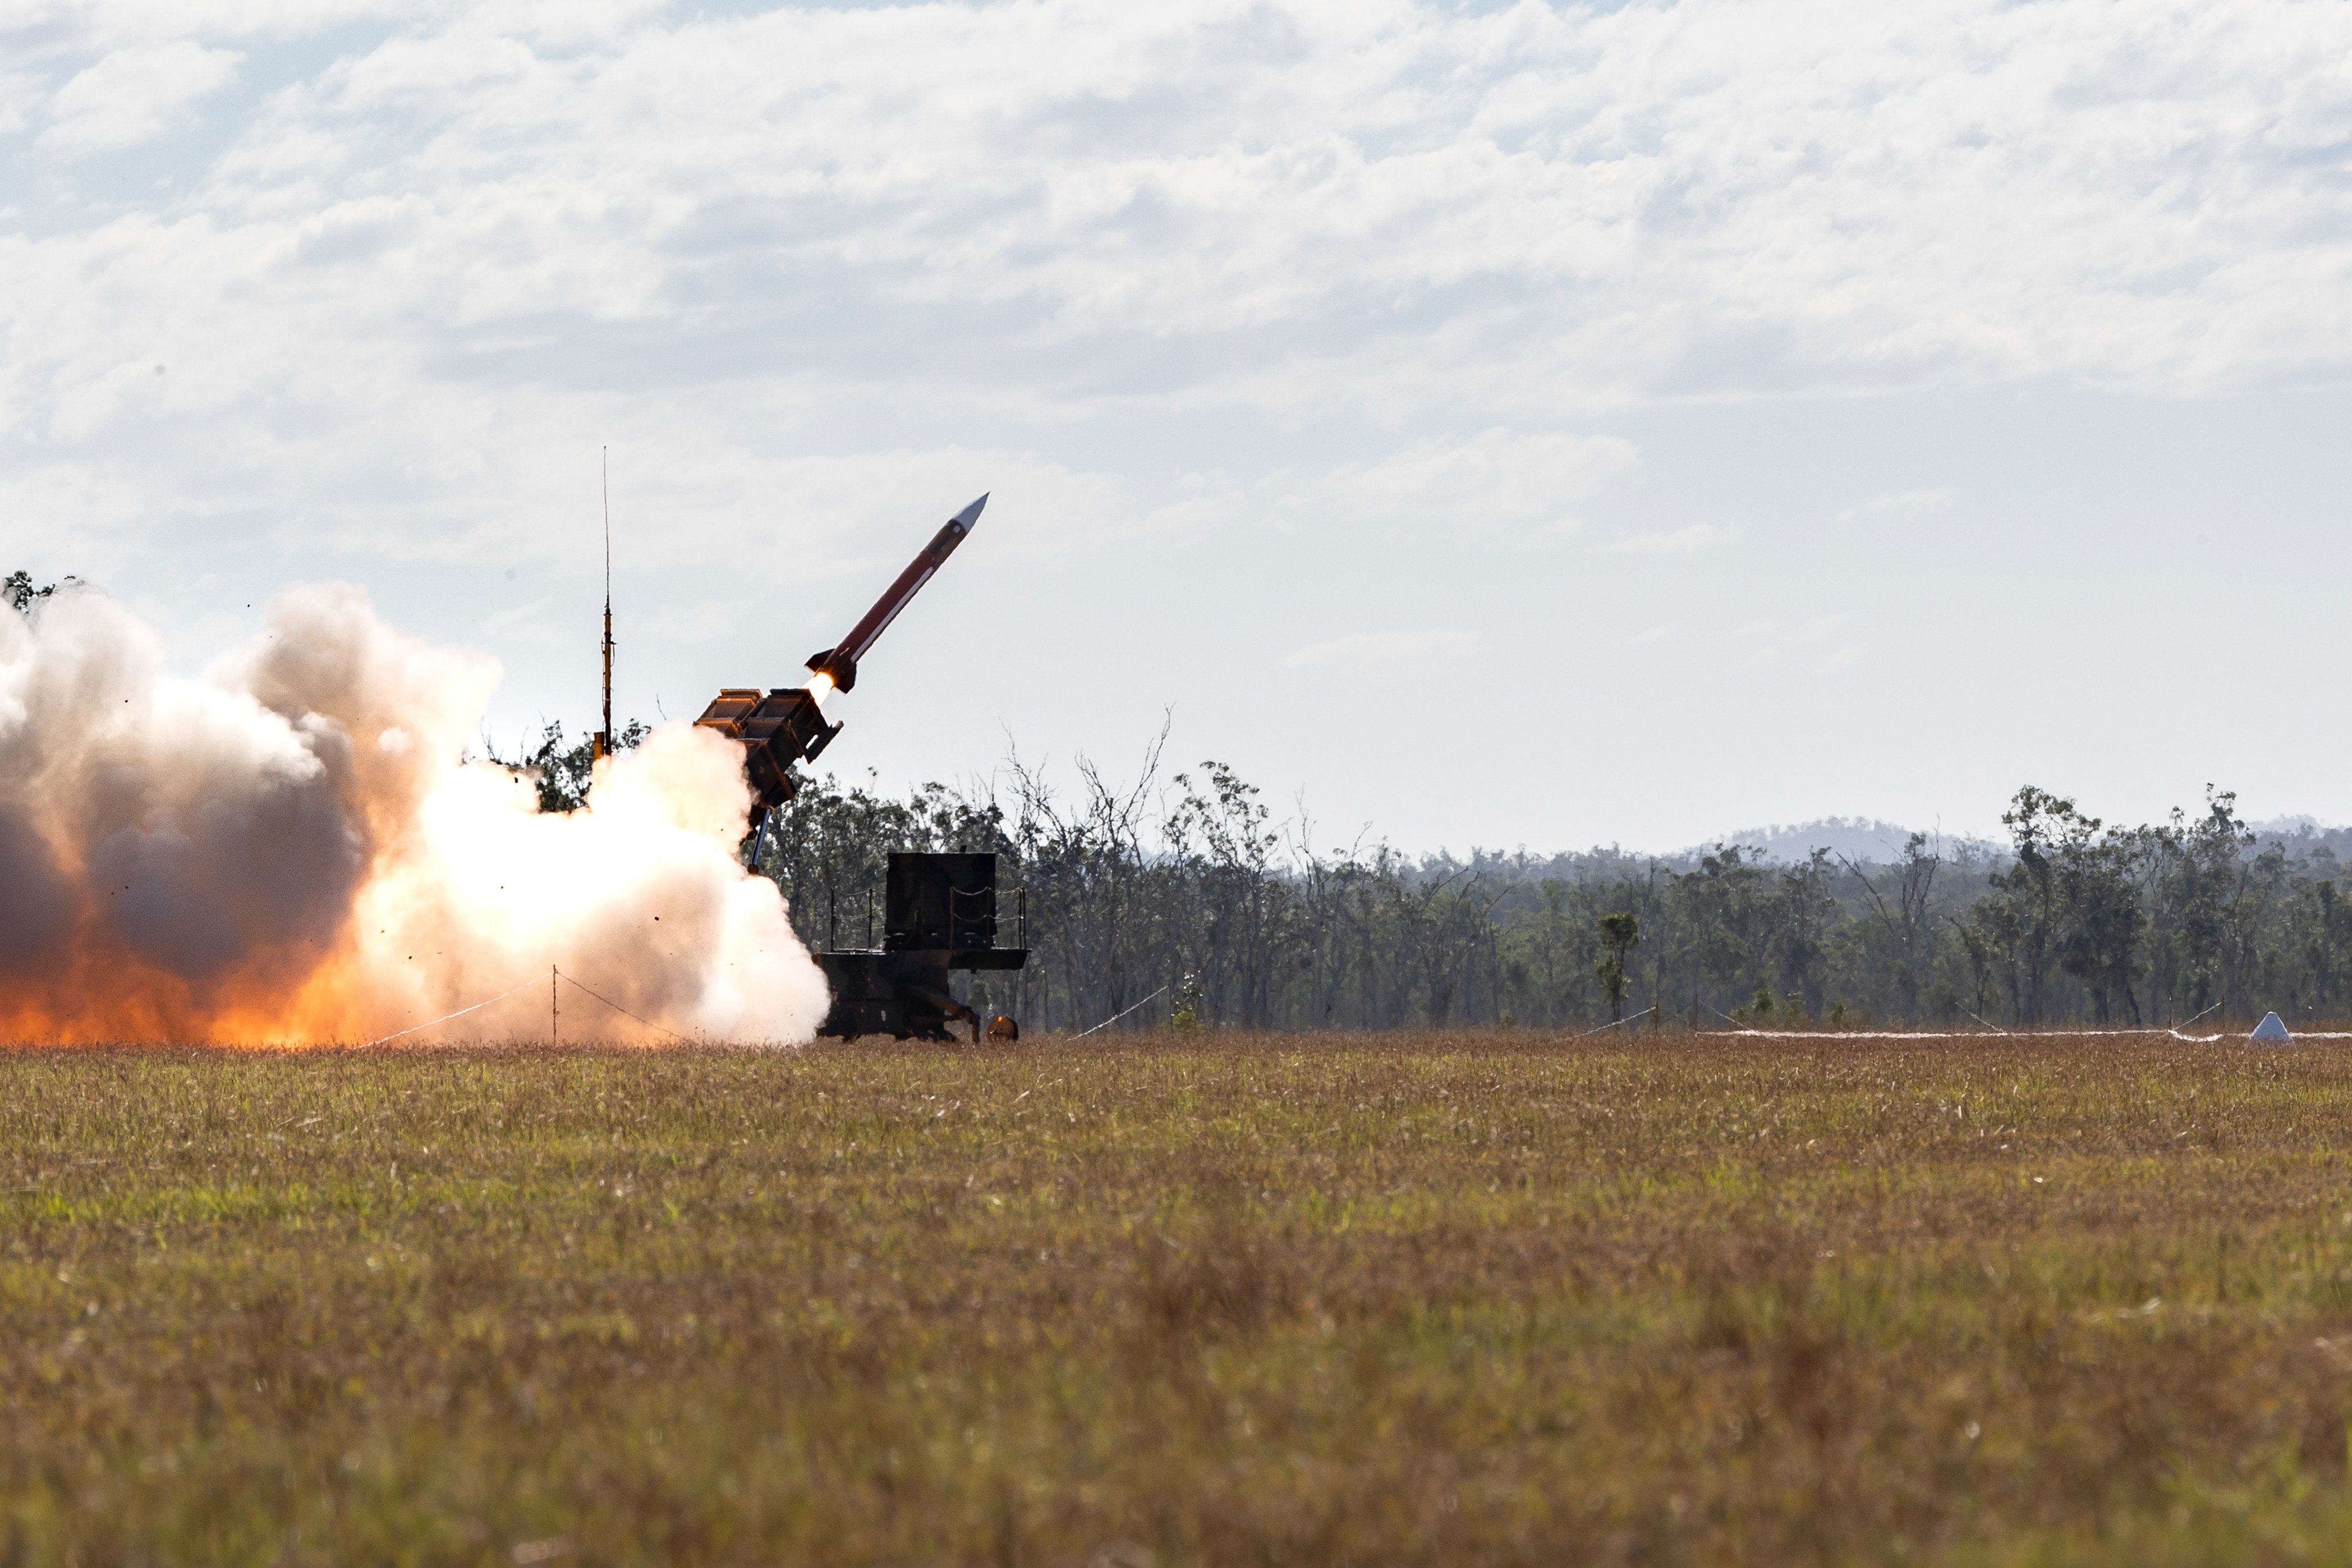 US Army MIM-104 Patriot Missile Live Fire During Exercise Talisman Sabre 21 in Australia